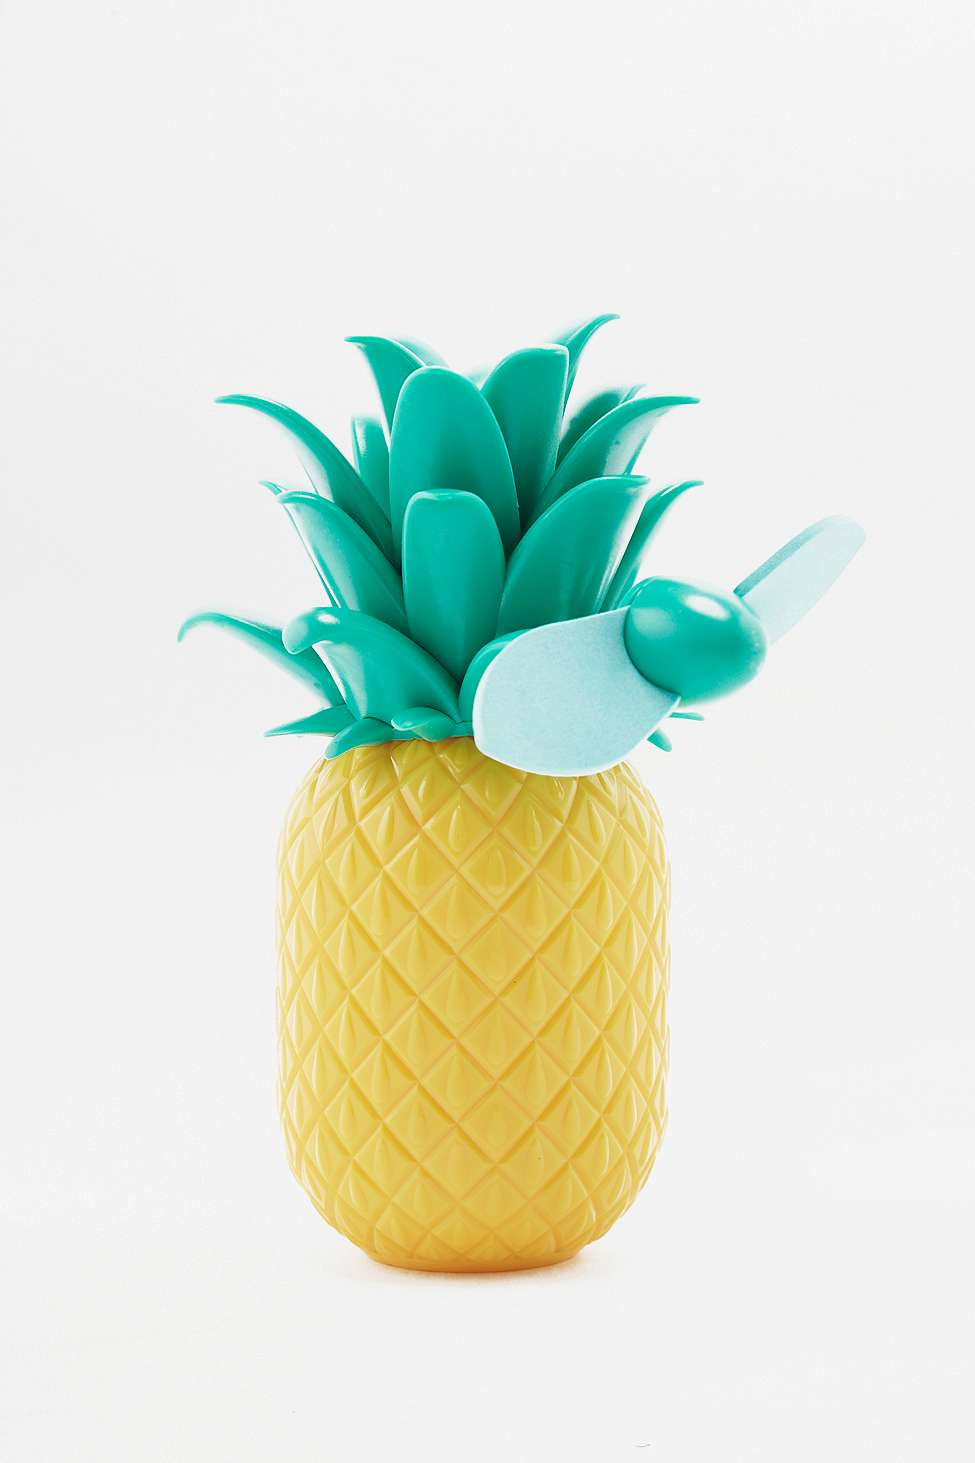 Slide View: 1: Pineapple Fan